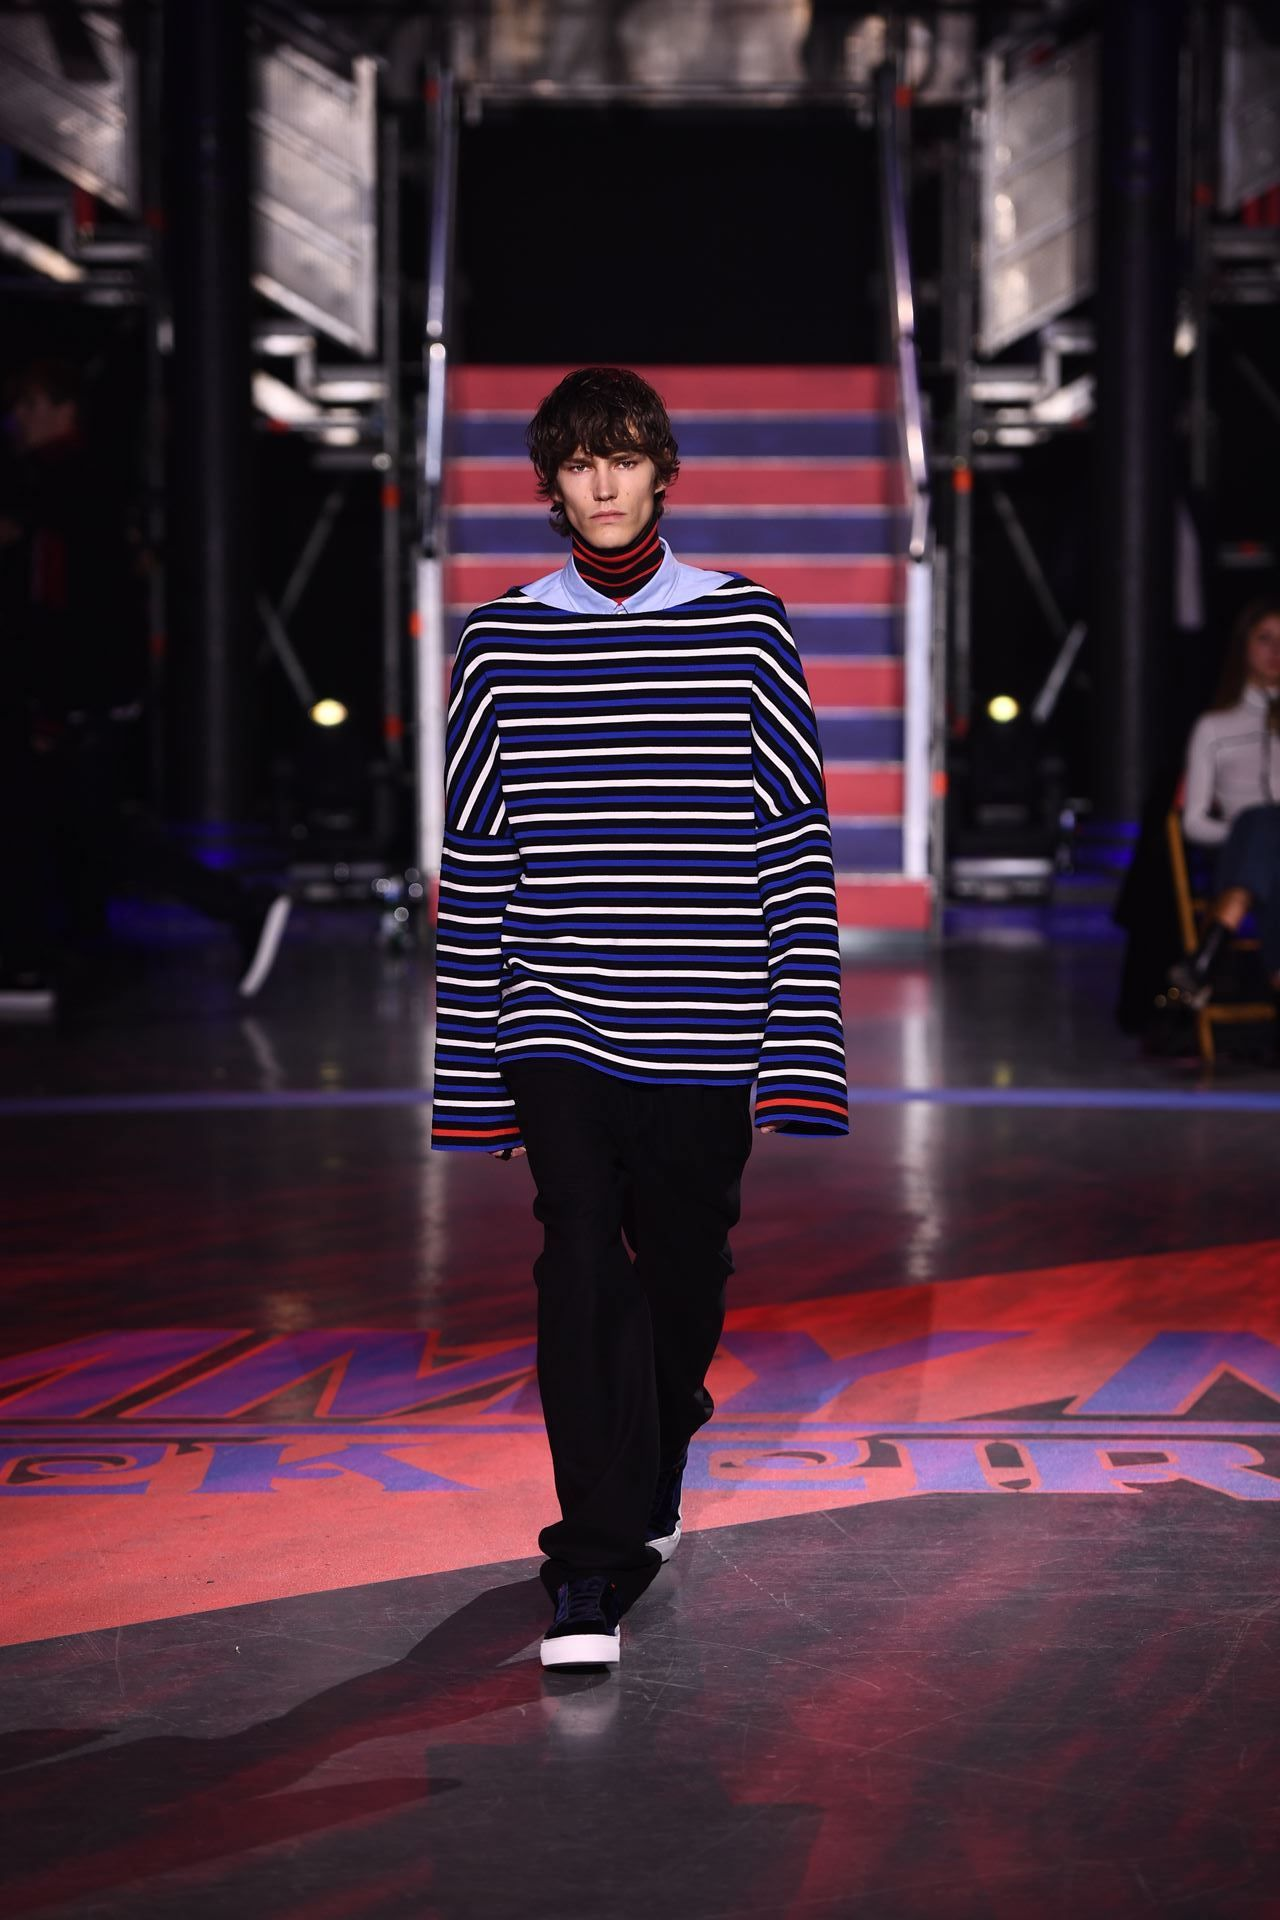 fd7c146f425bd Elias de Poot hit our London stage in the Hilfiger Edition Oversized Breton  Sweater